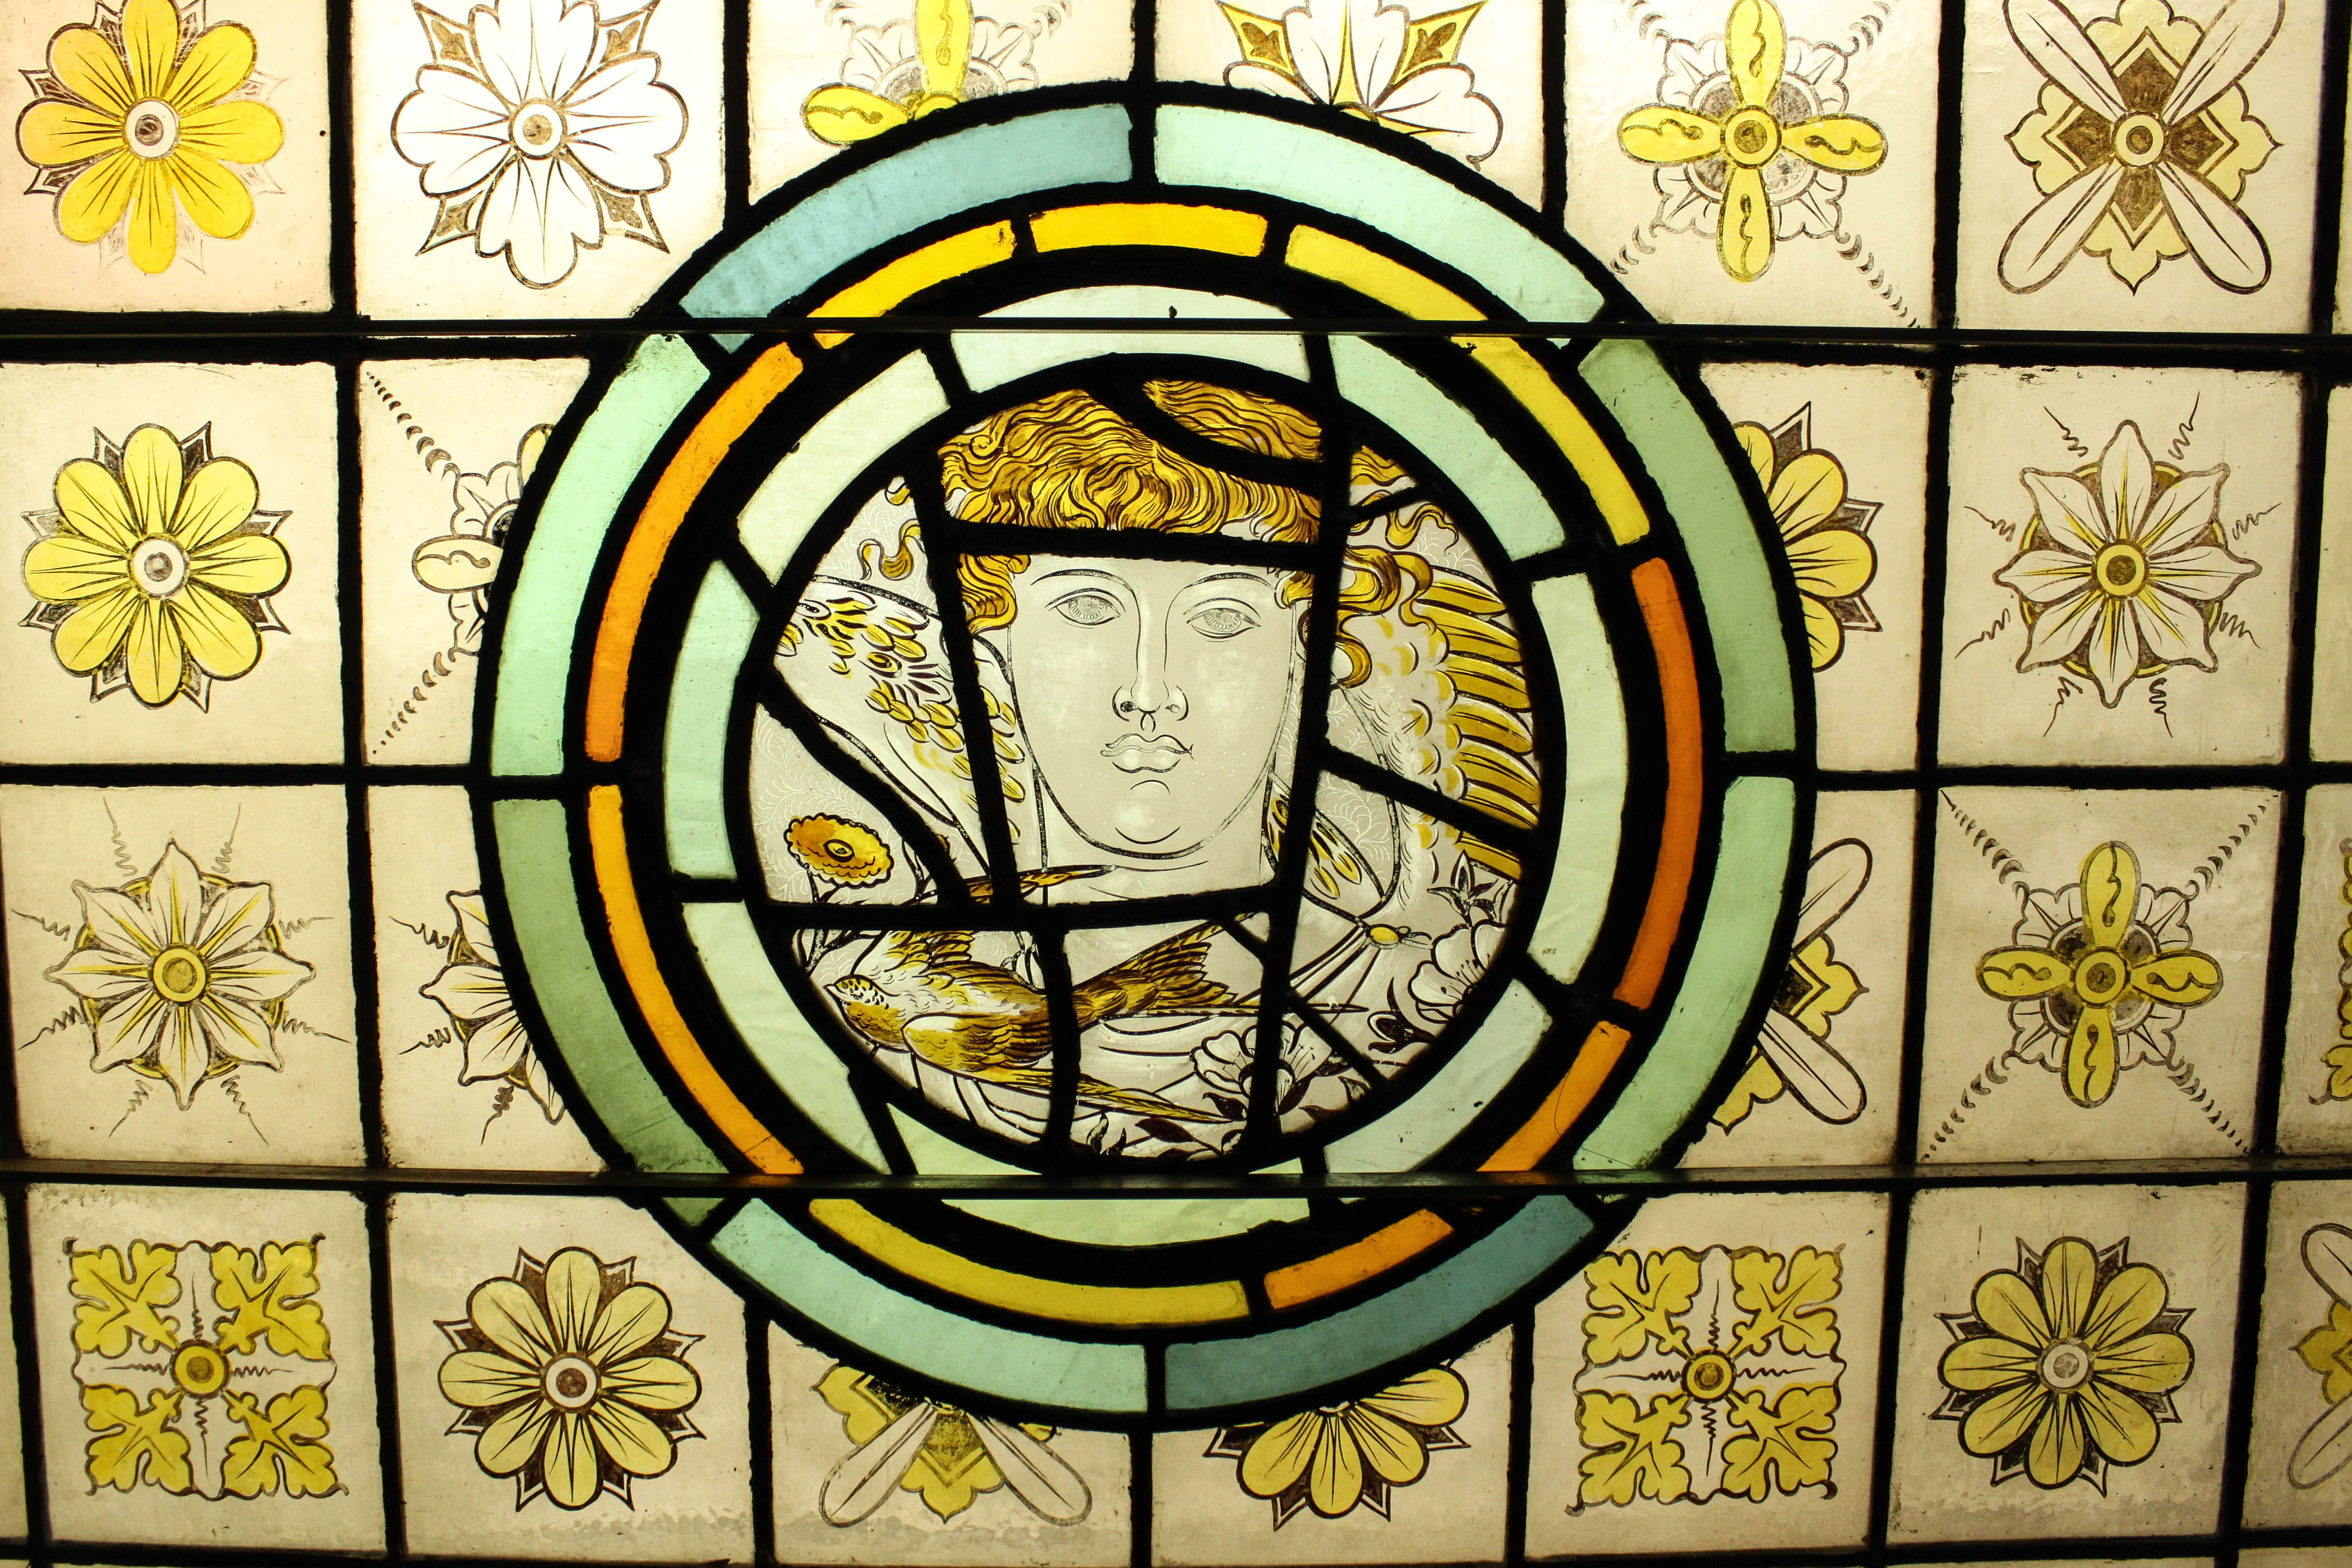 Mosaic Painted Stained Glass Window |